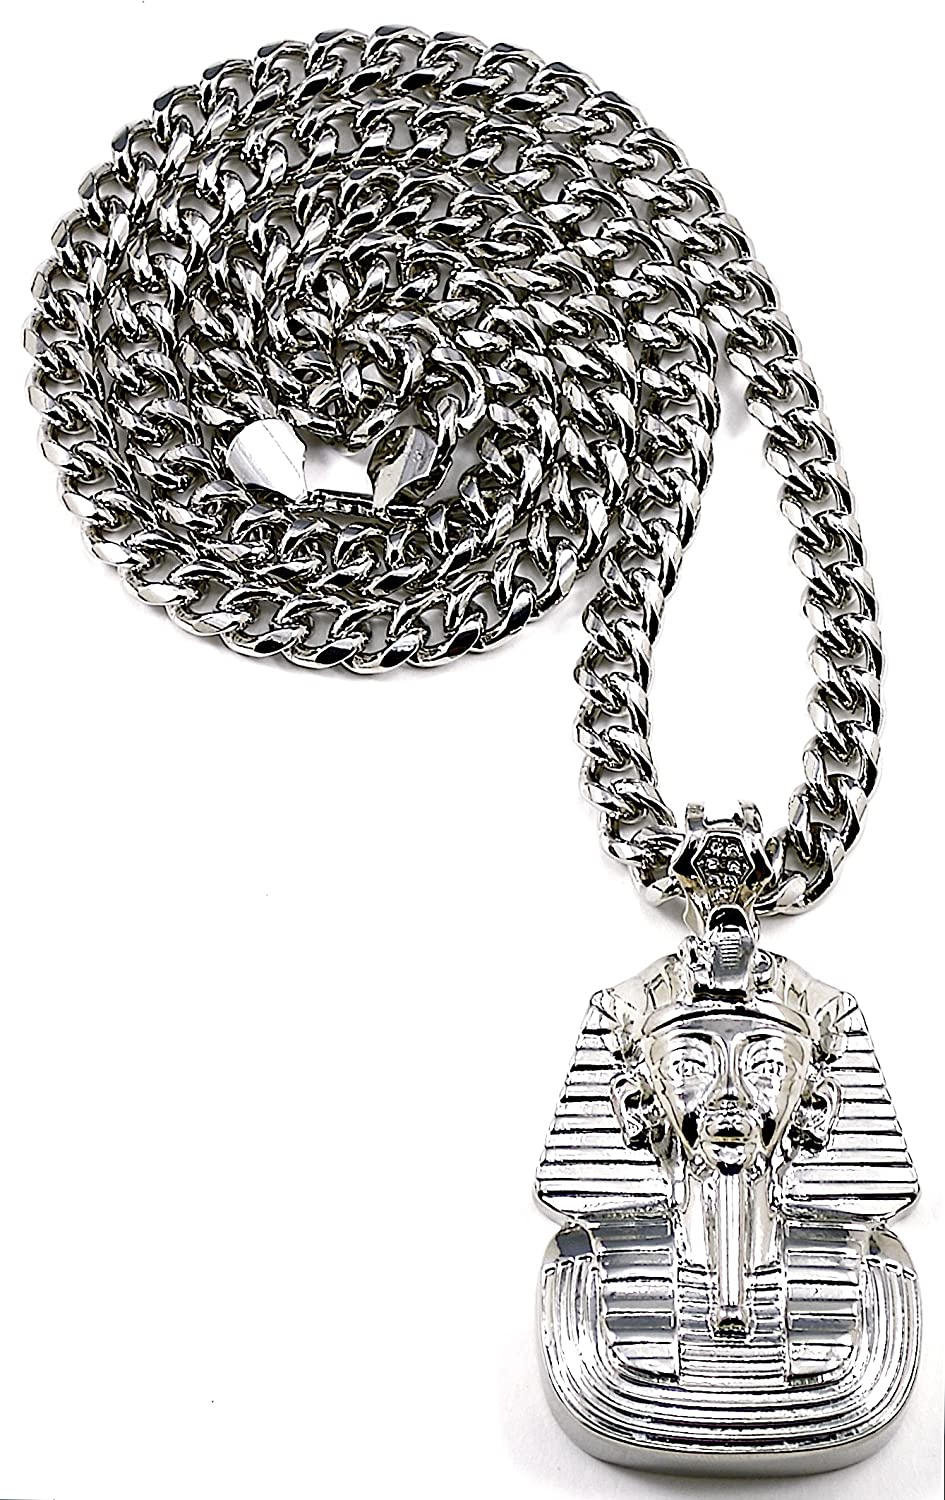 GWOOD Pharaoh New Free Recommended Shipping Necklace Pendant